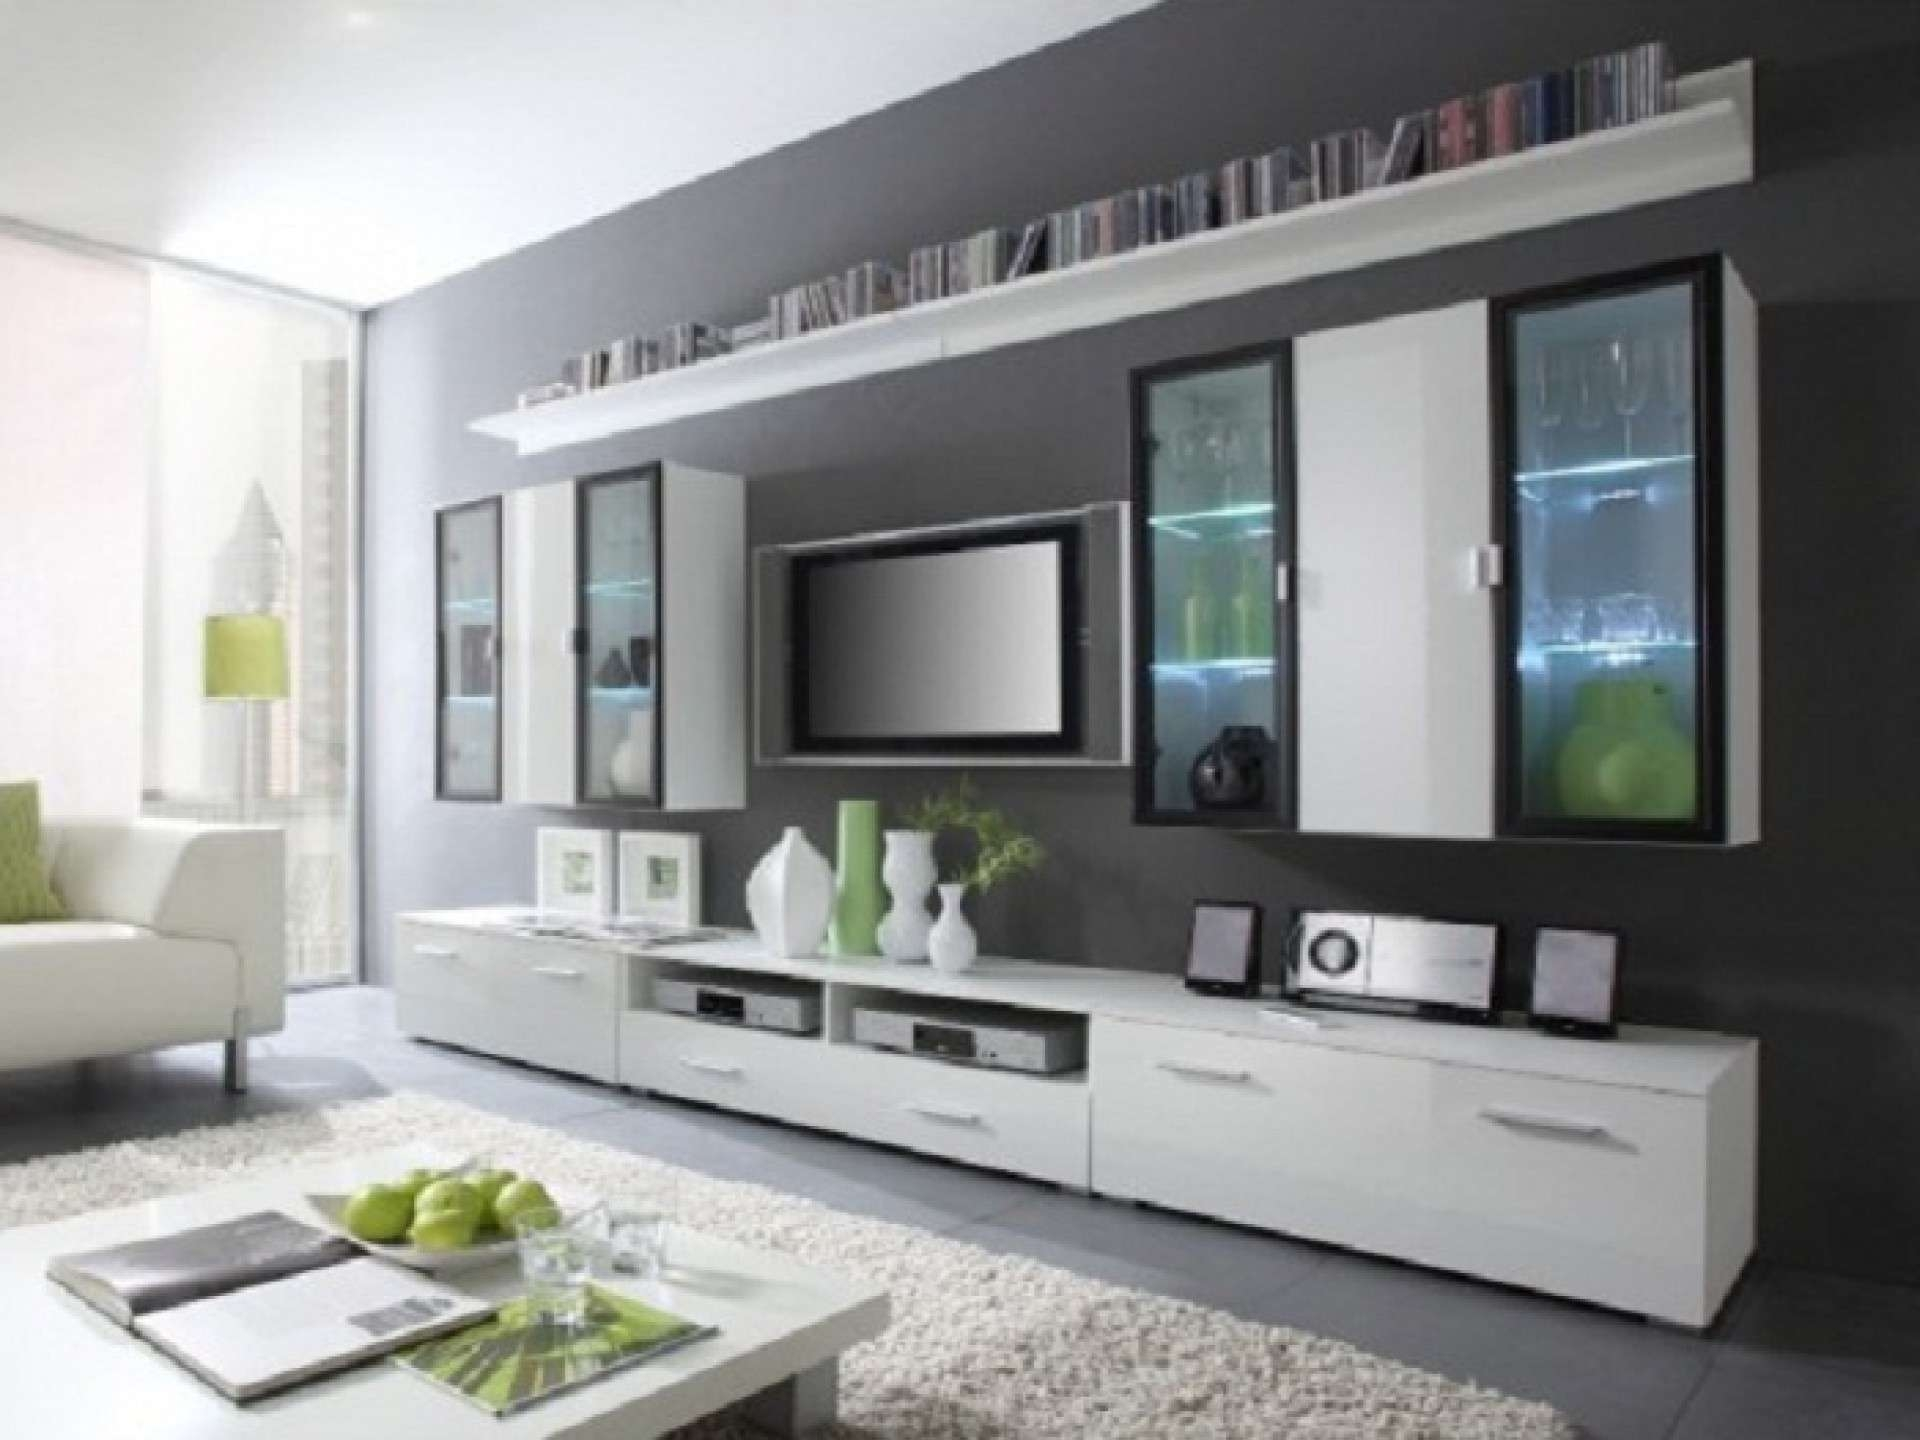 Wall Mounted Under Tv Cabinet – Home Design Ideas And Pictures Throughout Under Tv Cabinets (View 19 of 20)